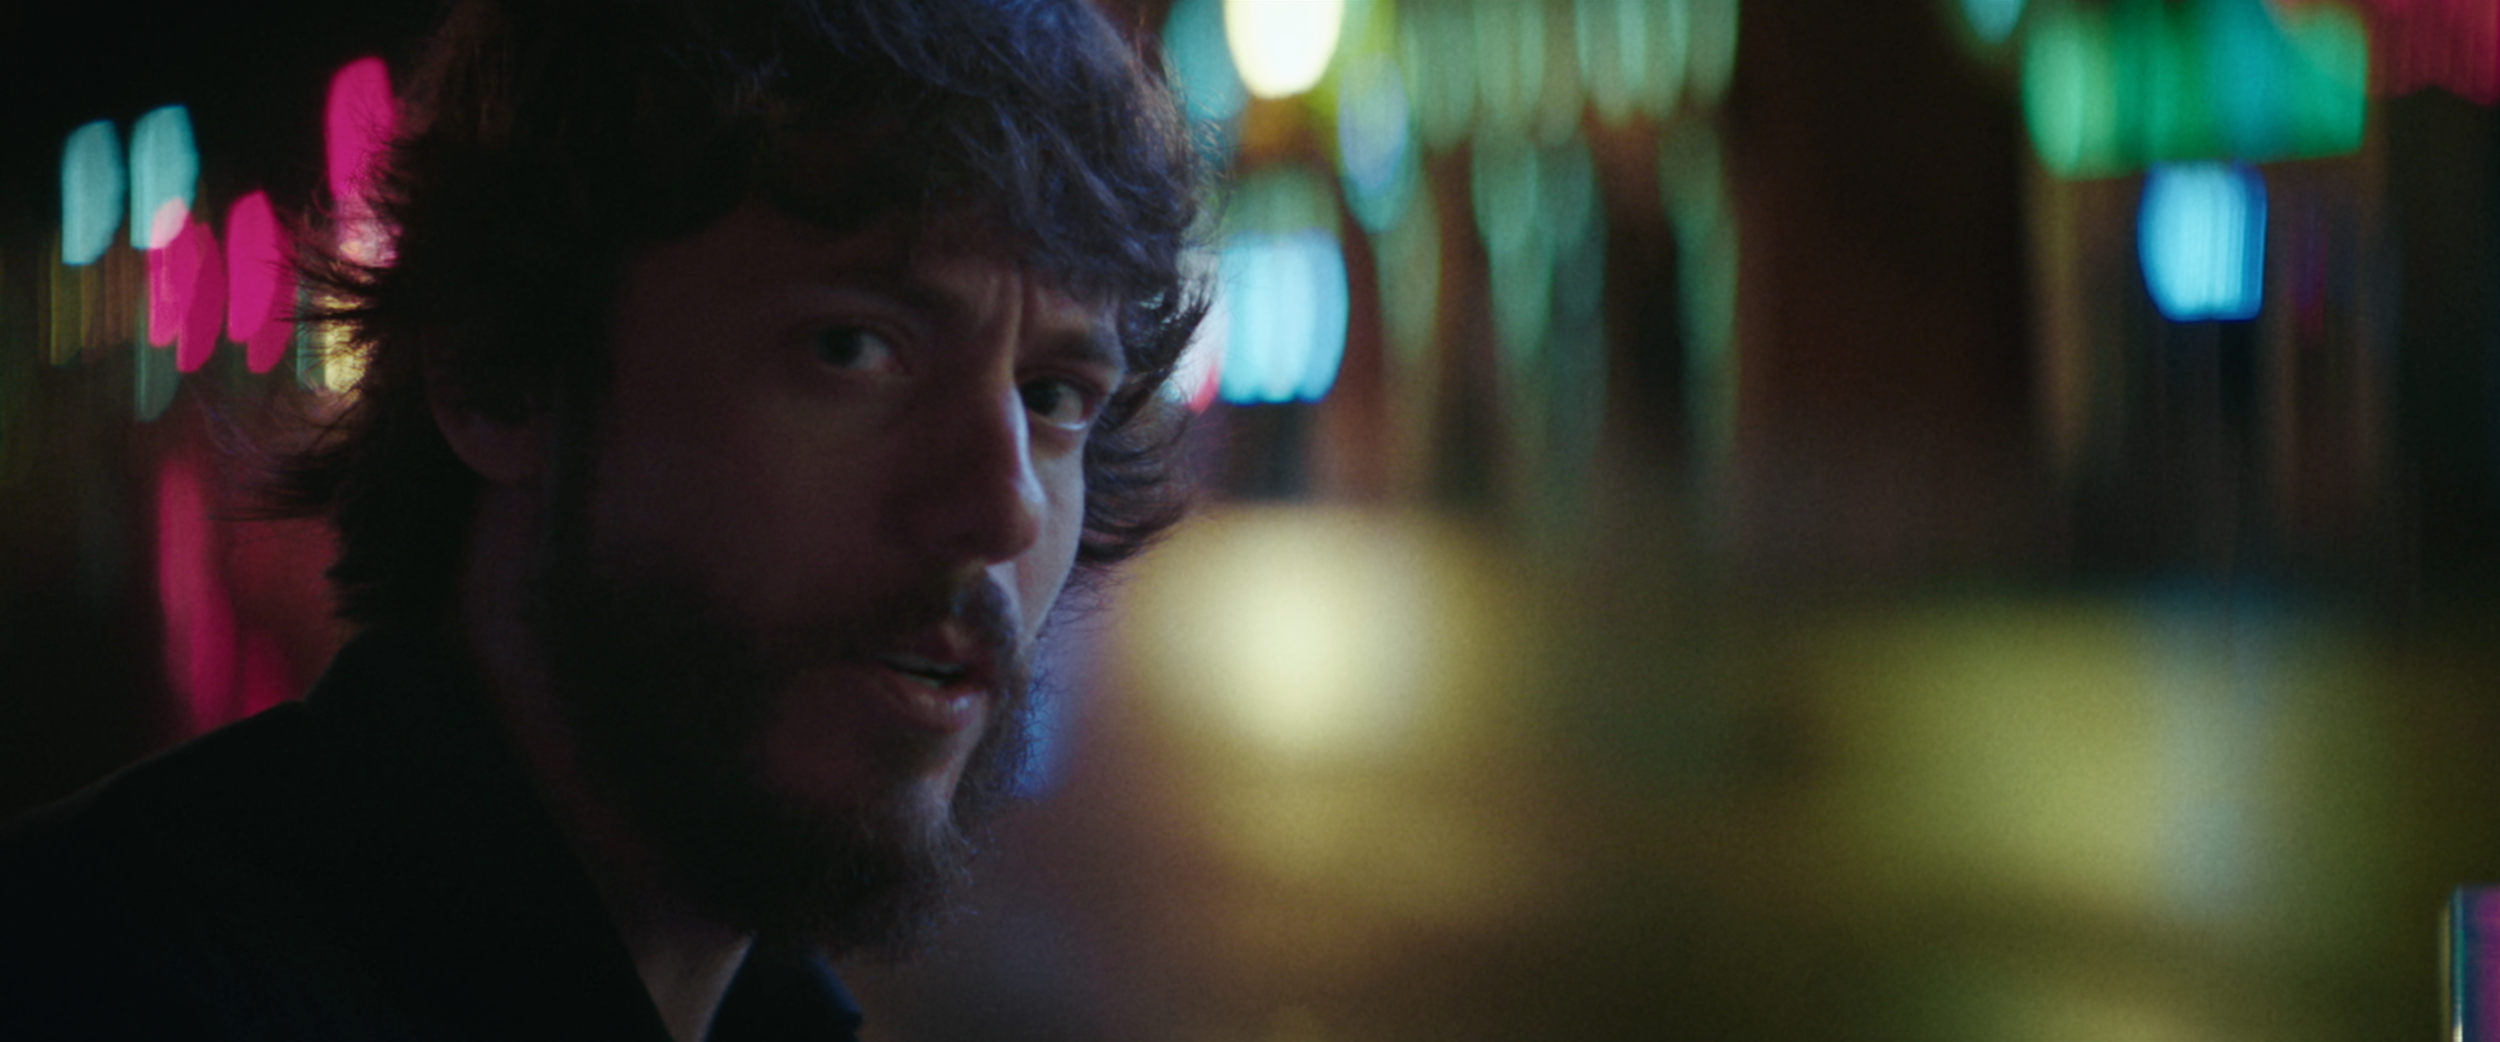 ChrisJanson-DrunkGirl_MASTER-COLOR-01_mov 36.png